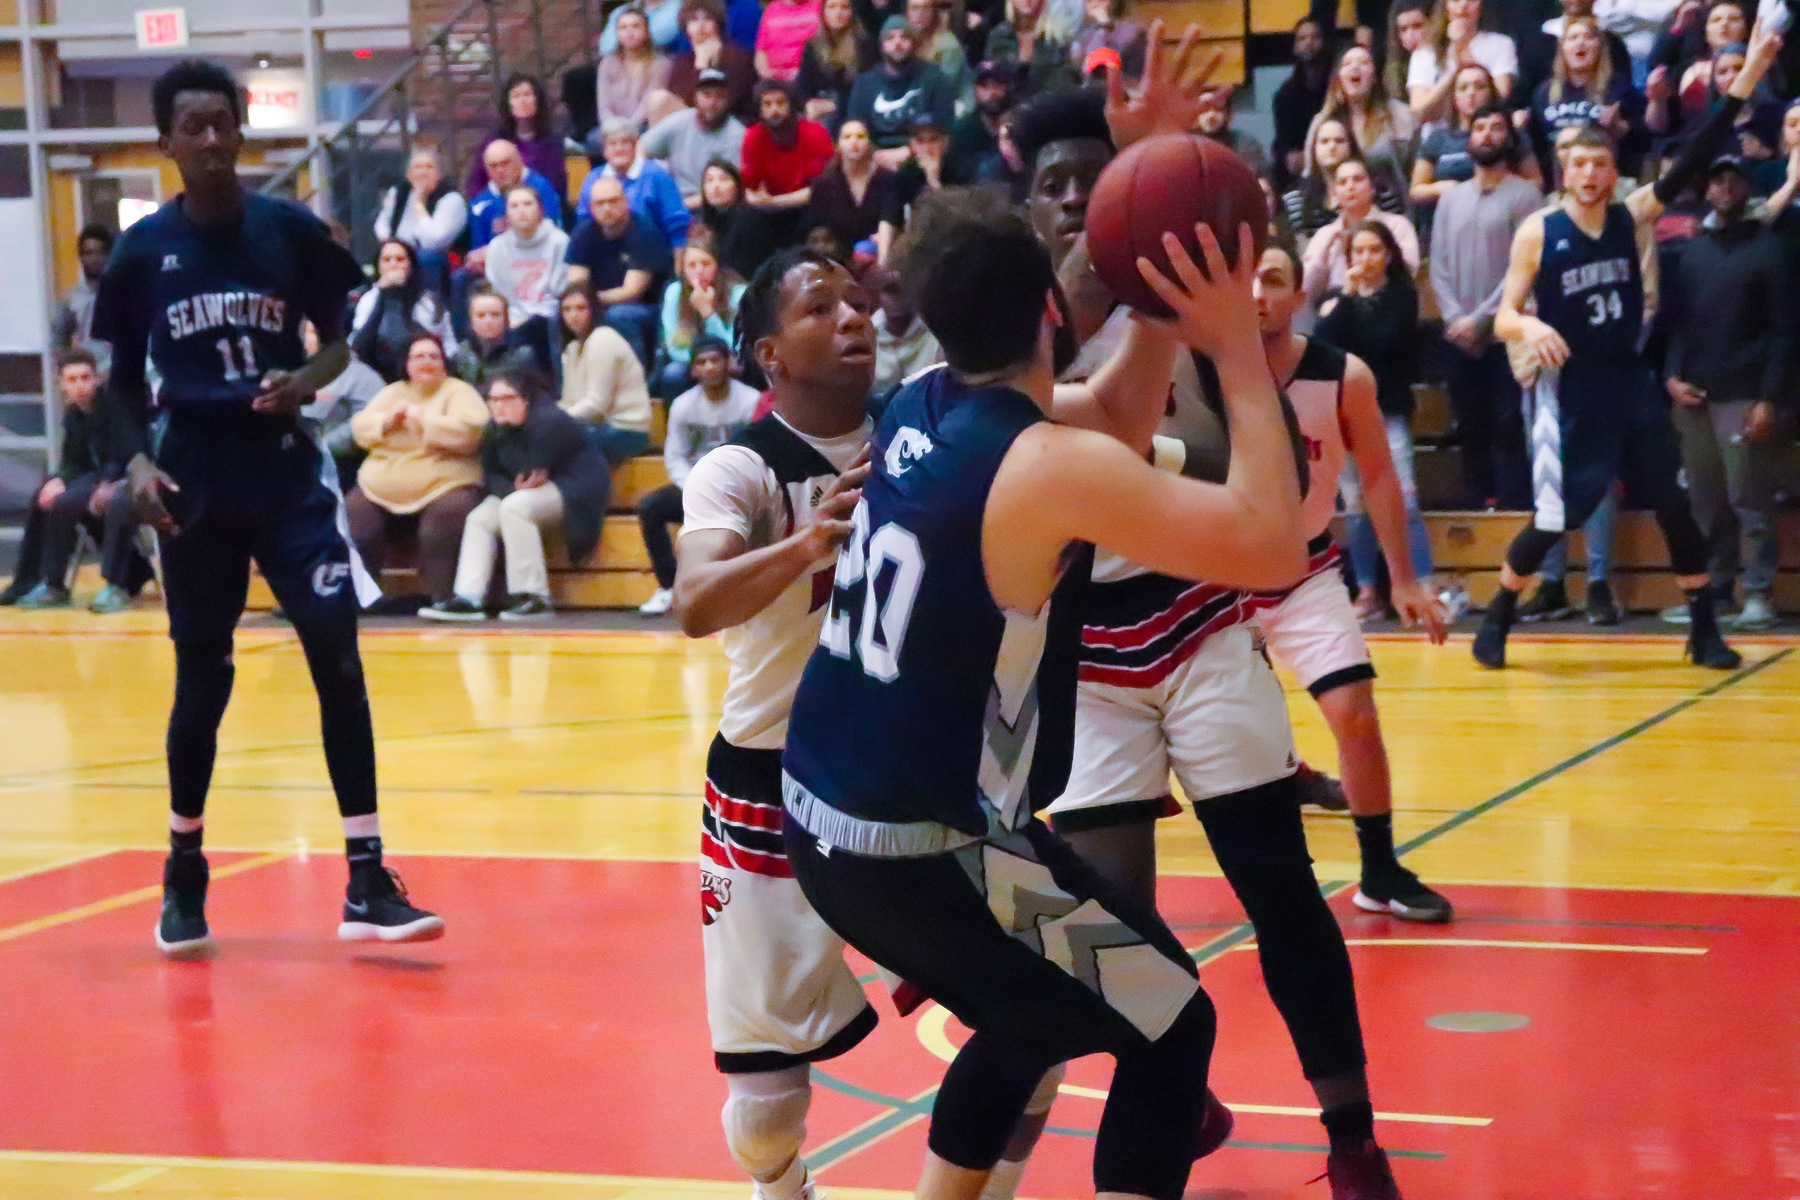 SMCC Men Victorious At Rival Central Maine 71-51